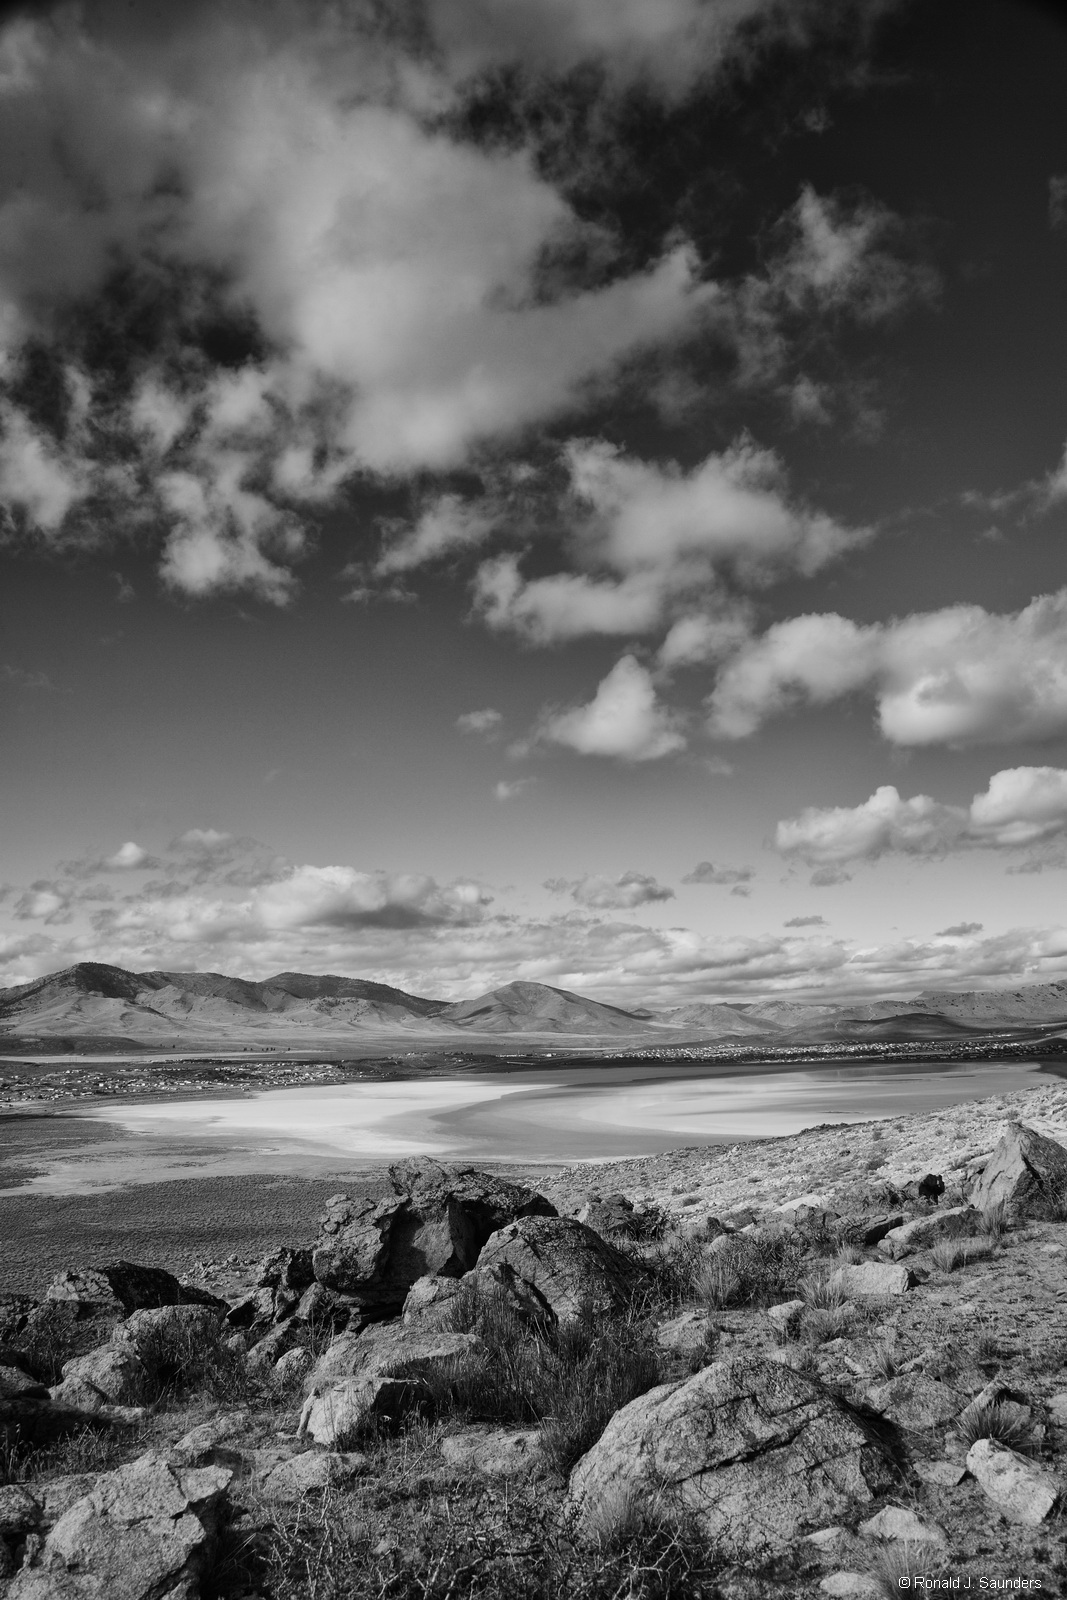 ron, saunders, ronald, ronald j saunders, landscape, photography, nevada, california, image, black, white, exhibition, desert, black rock, mountain, photography, photo